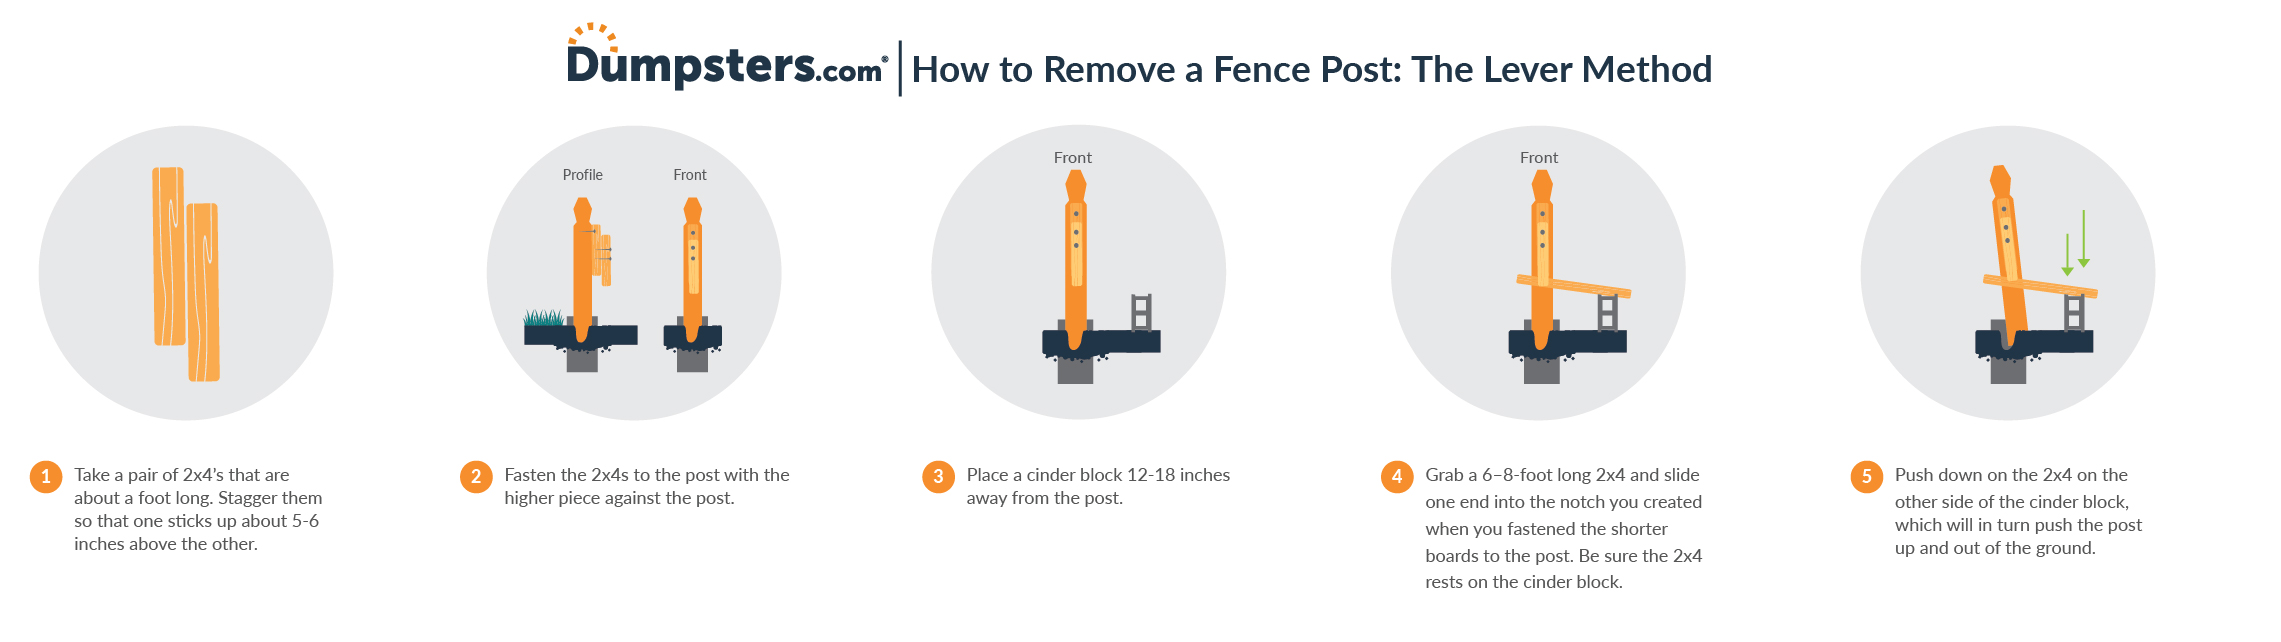 Dumpsters.com Infographic Detailing How to Create a Lever to Remove a Fence Post.